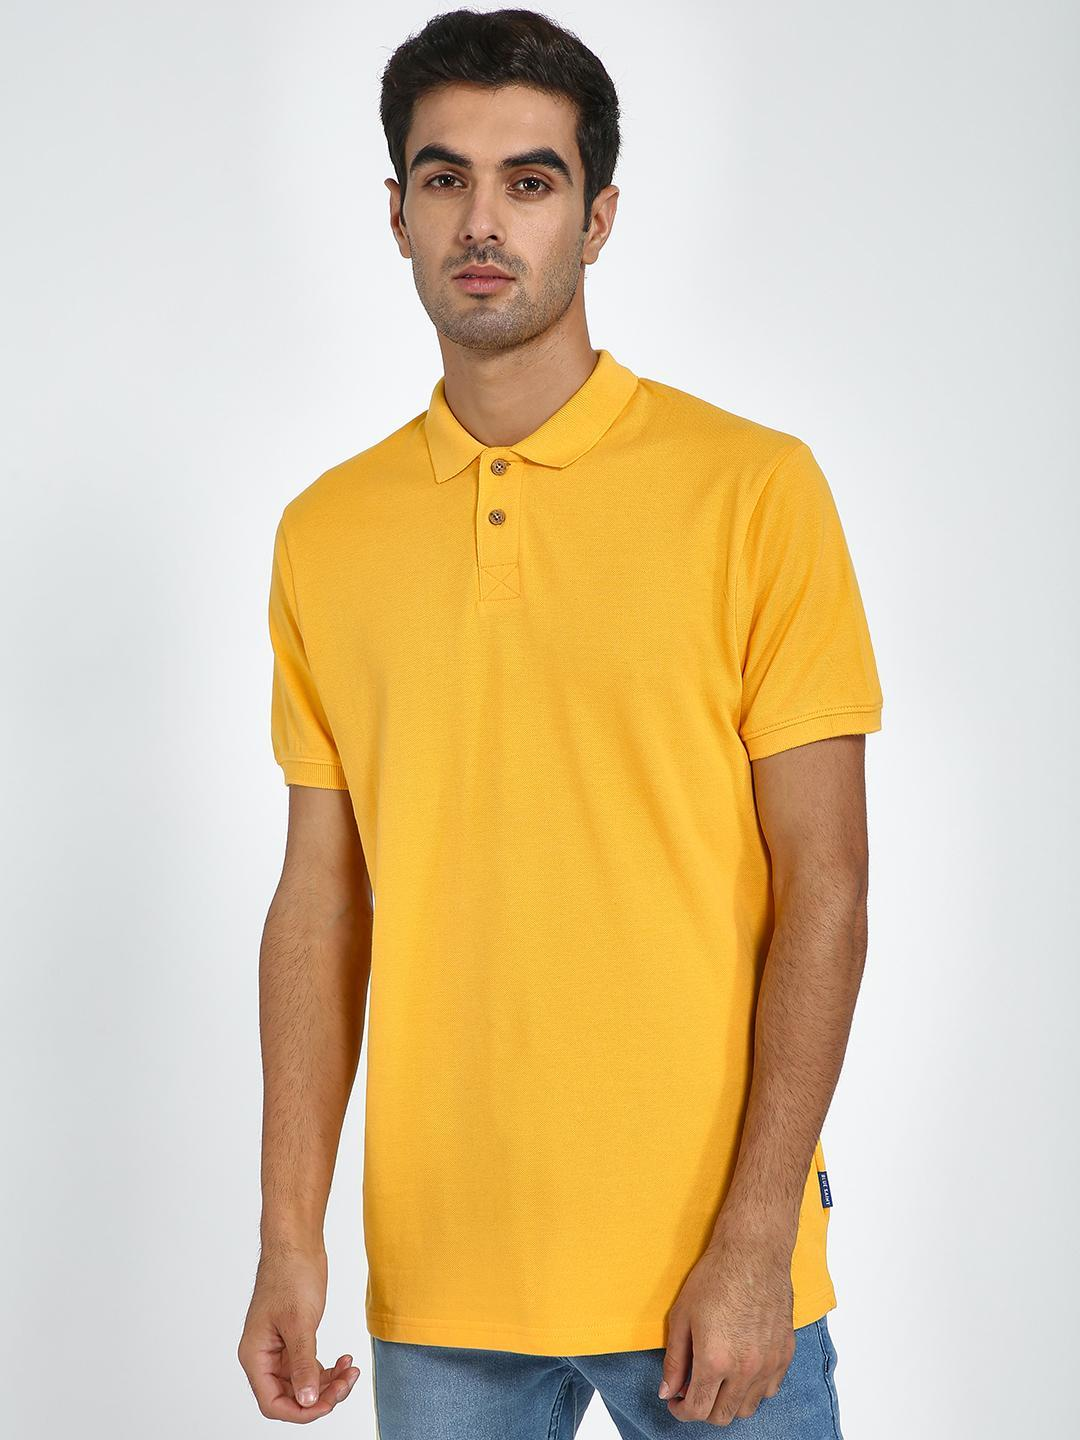 Blue Saint Yellow Short Sleeve Polo Shirt 1